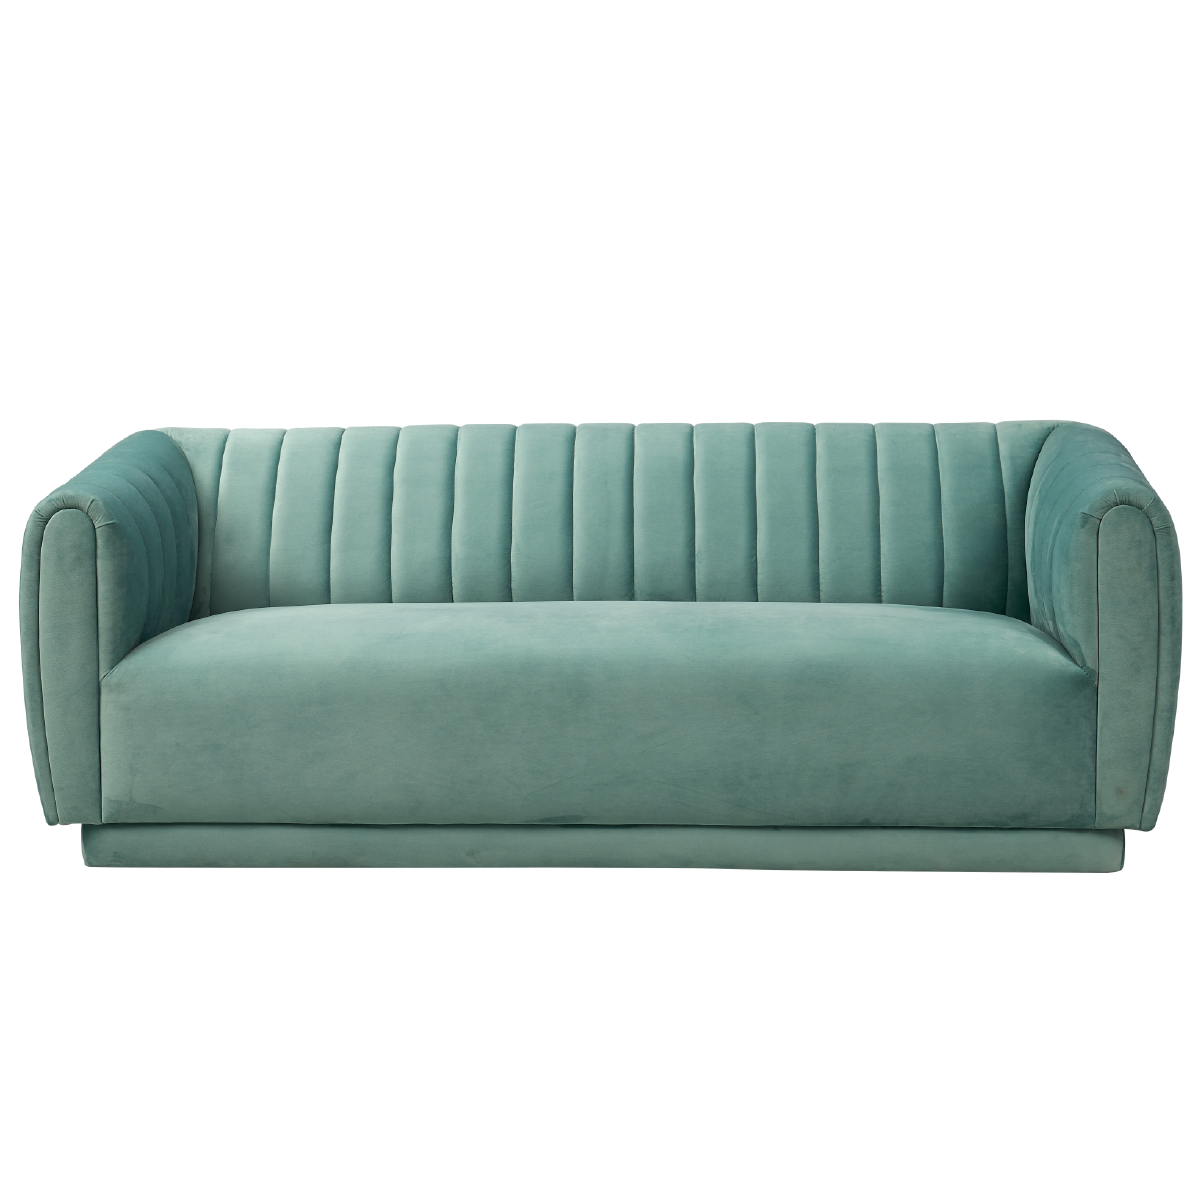 Peridot 3 Seater Sofa - mhomefurniture